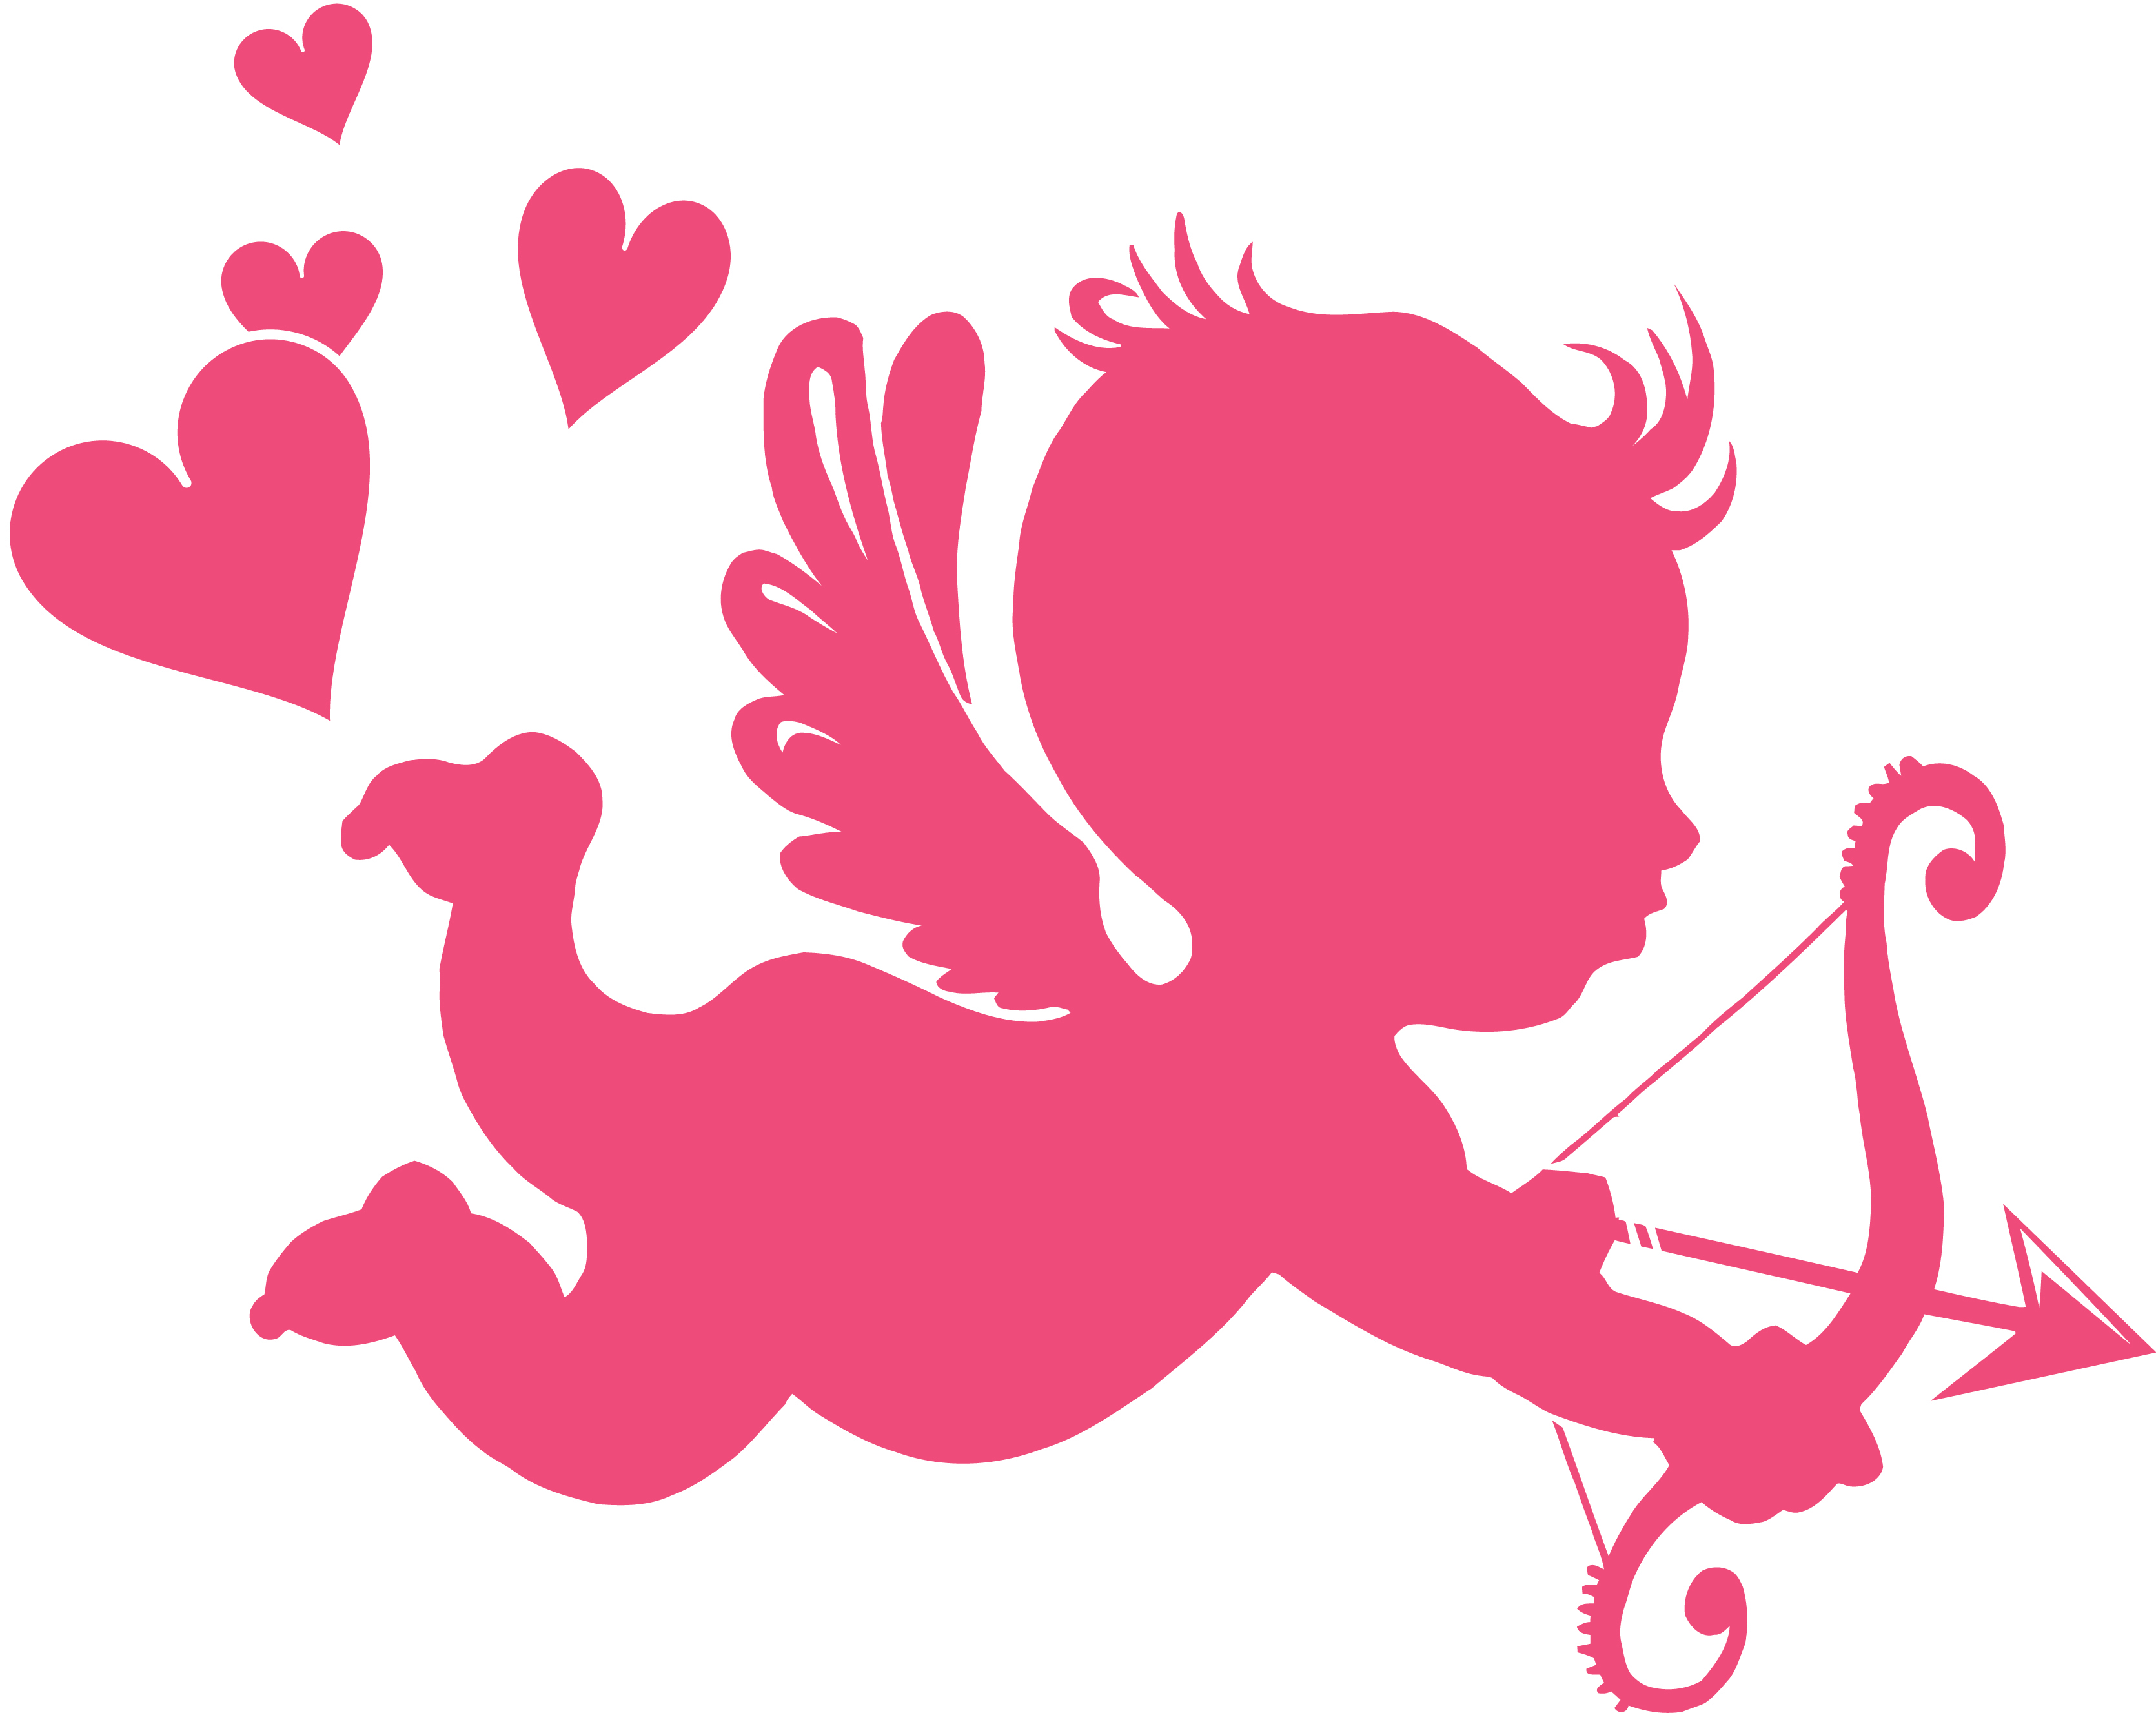 Love cupid images